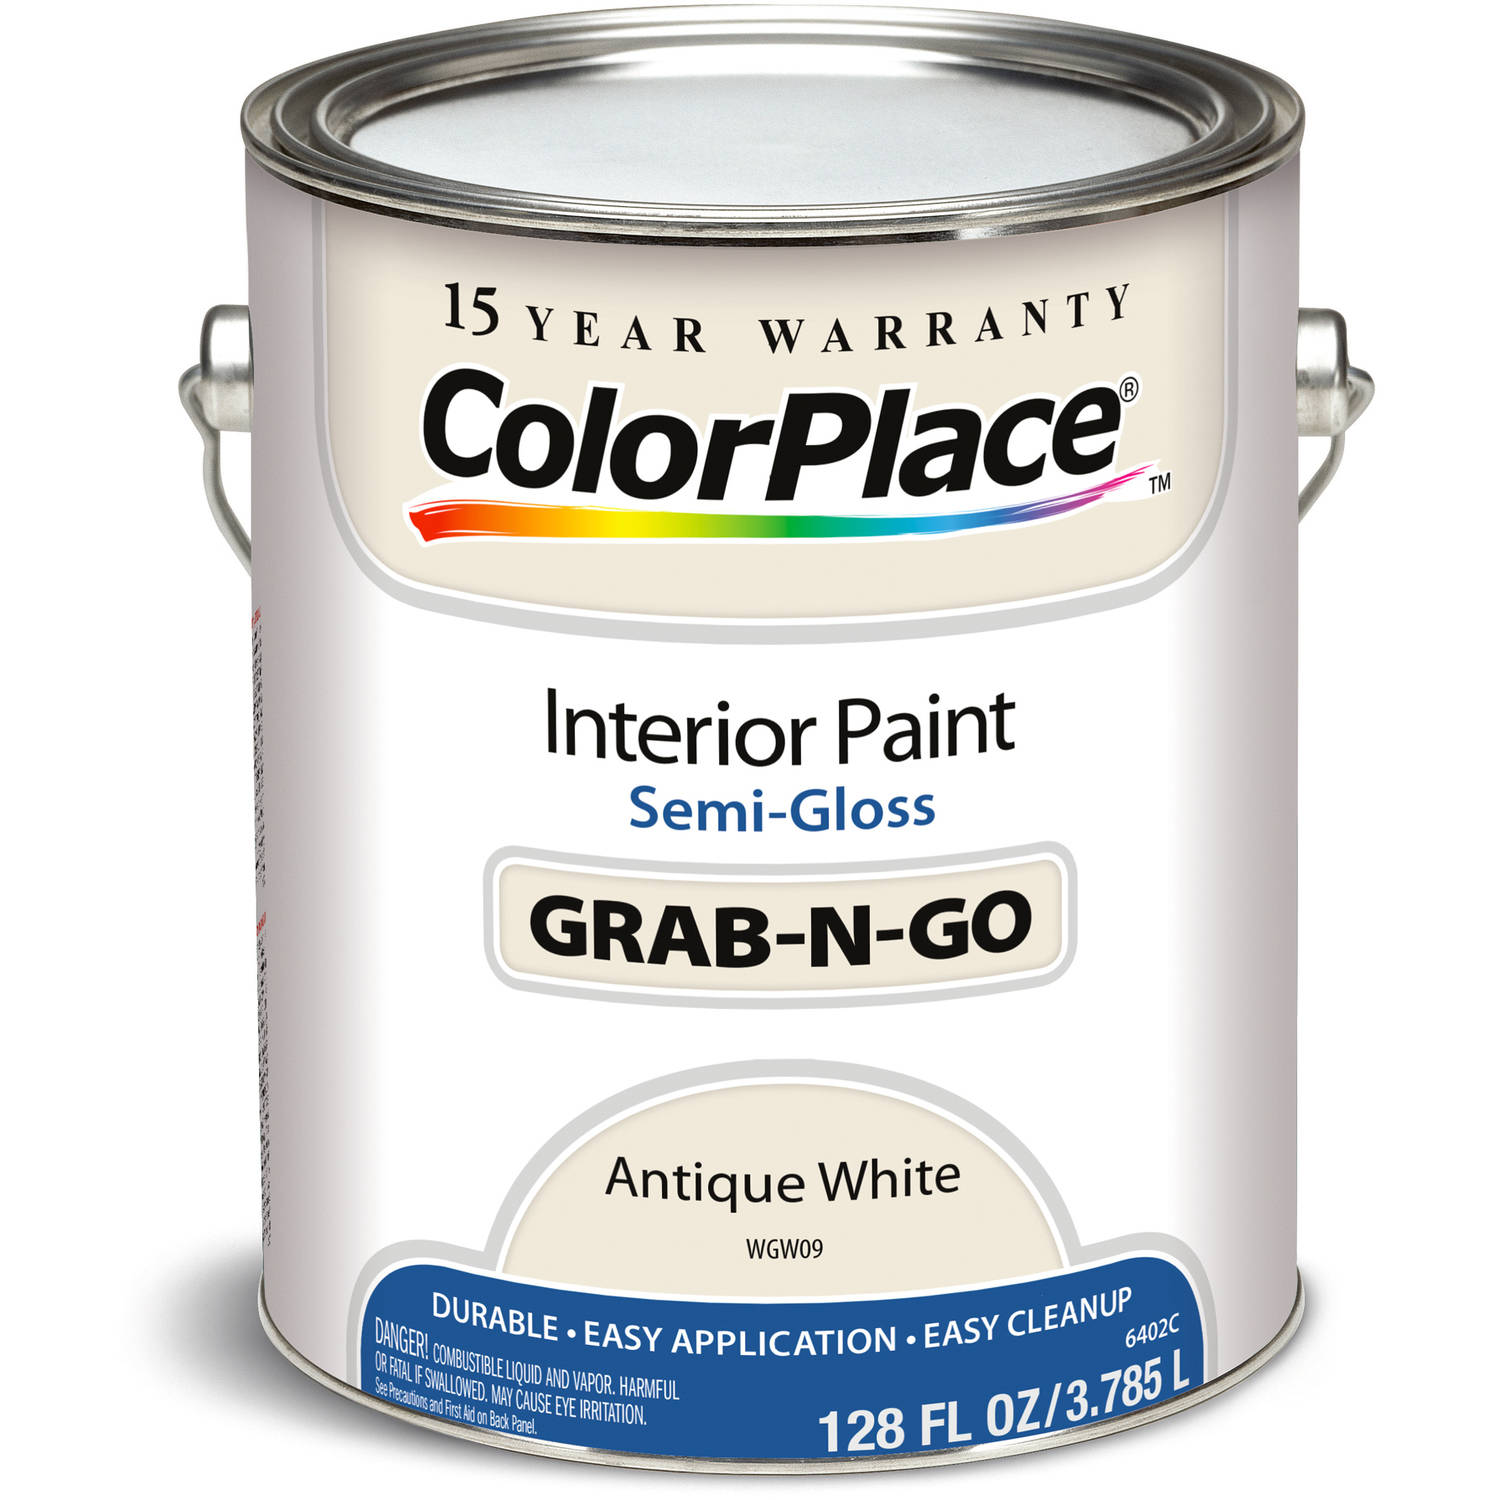 Colorplace Antique White Semi Gloss Interior Paint, 1-Gallon